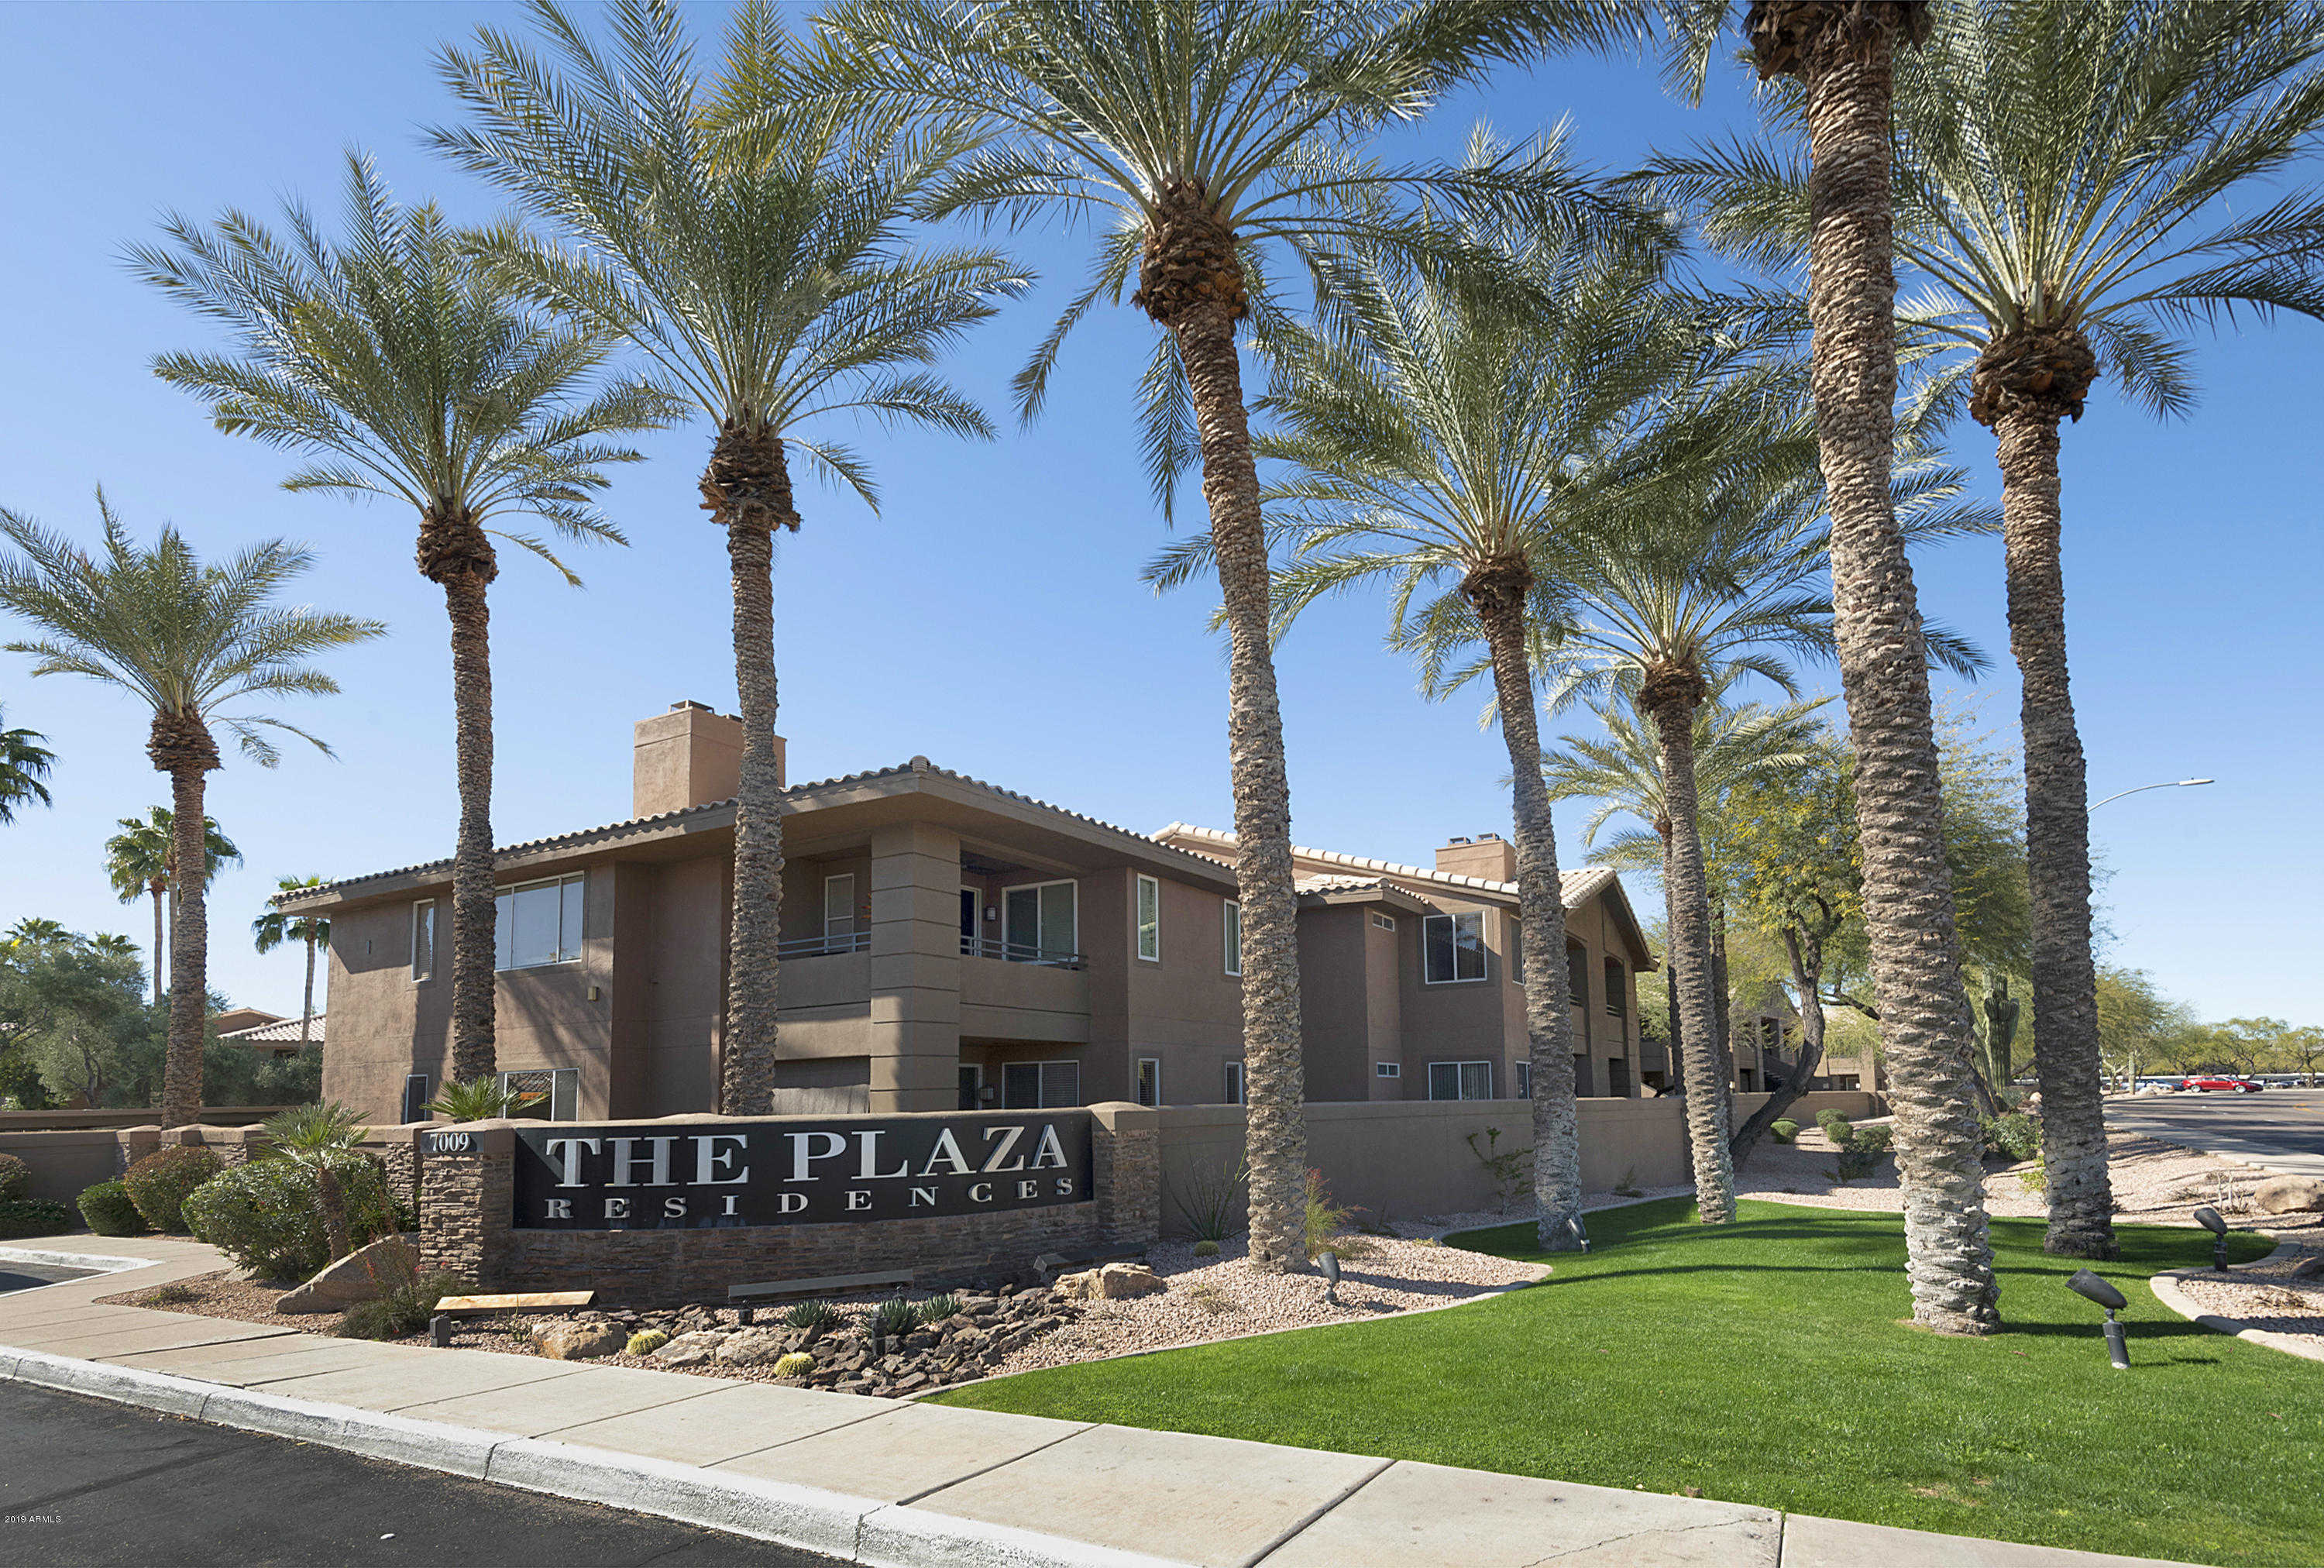 $209,900 - 1Br/1Ba -  for Sale in Plaza Residences A Condominium, Scottsdale